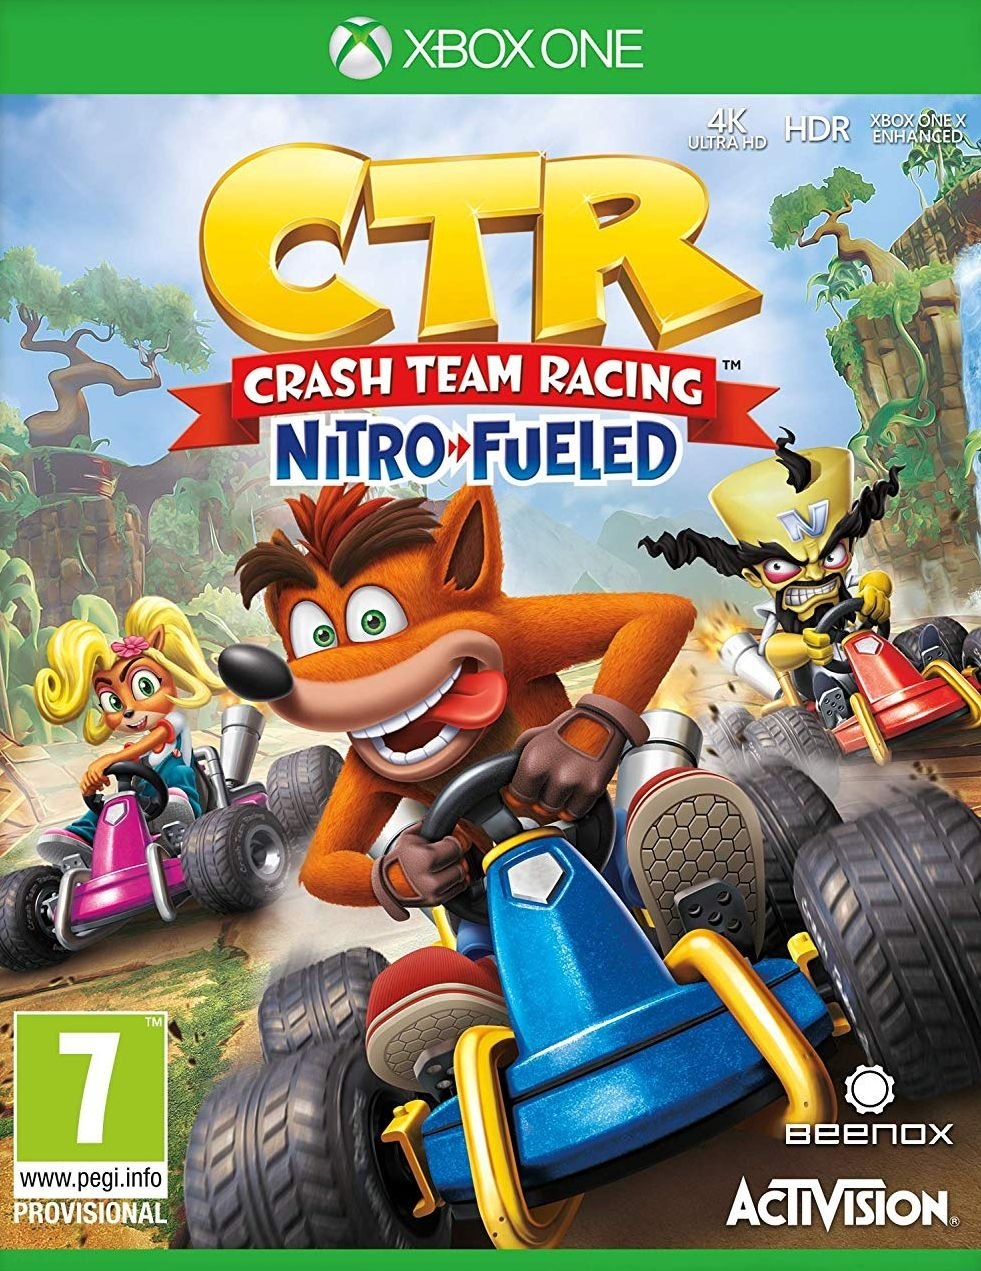 XBOXOne Crash Team Racing Nitro-Fueled